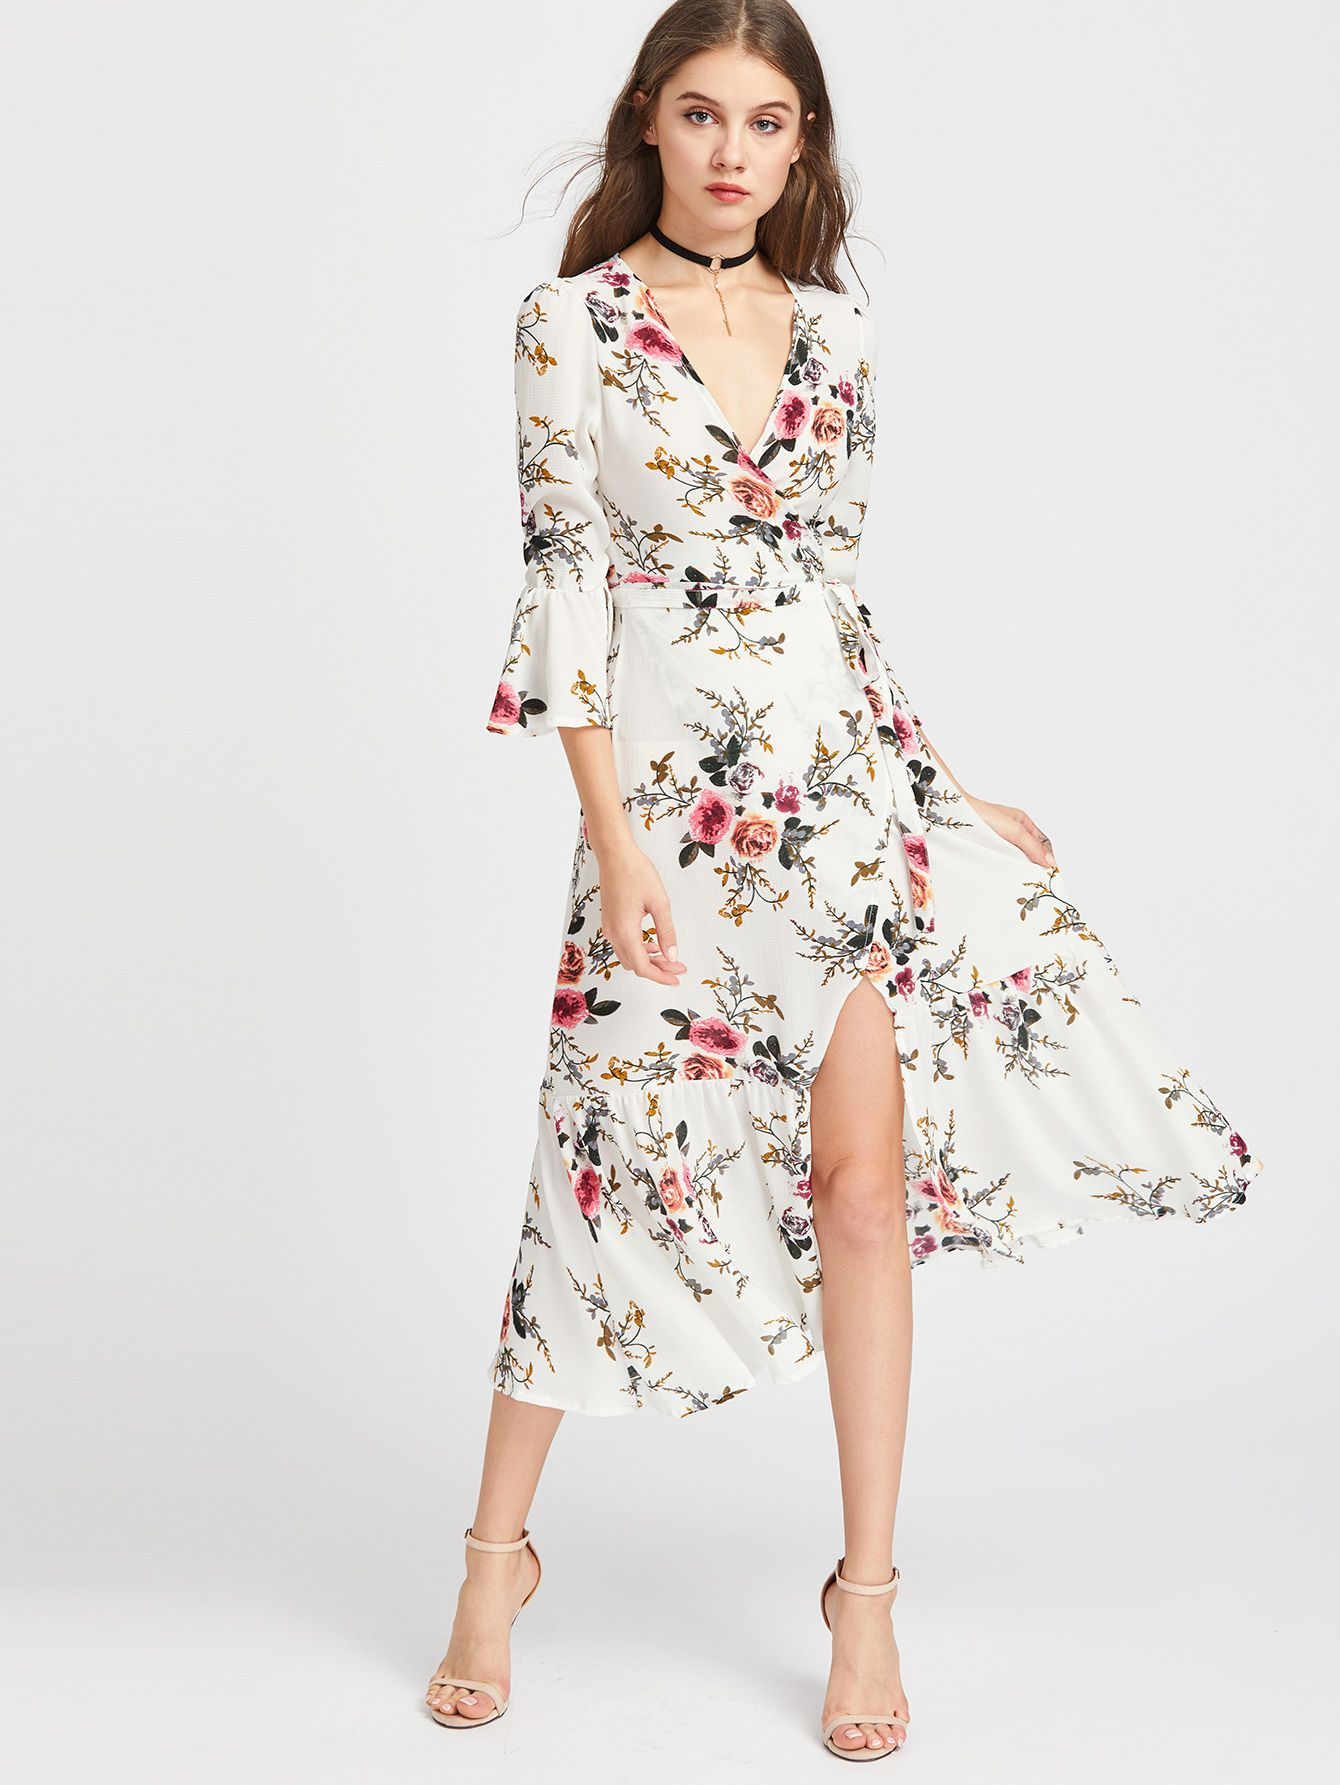 89c4bc18dc Shop Plunge Neck Floral Print Bell Sleeve Slit Side Dress online. SheIn  offers Plunge Neck Floral Print Bell Sleeve Slit Side Dress   more to fit  your ...